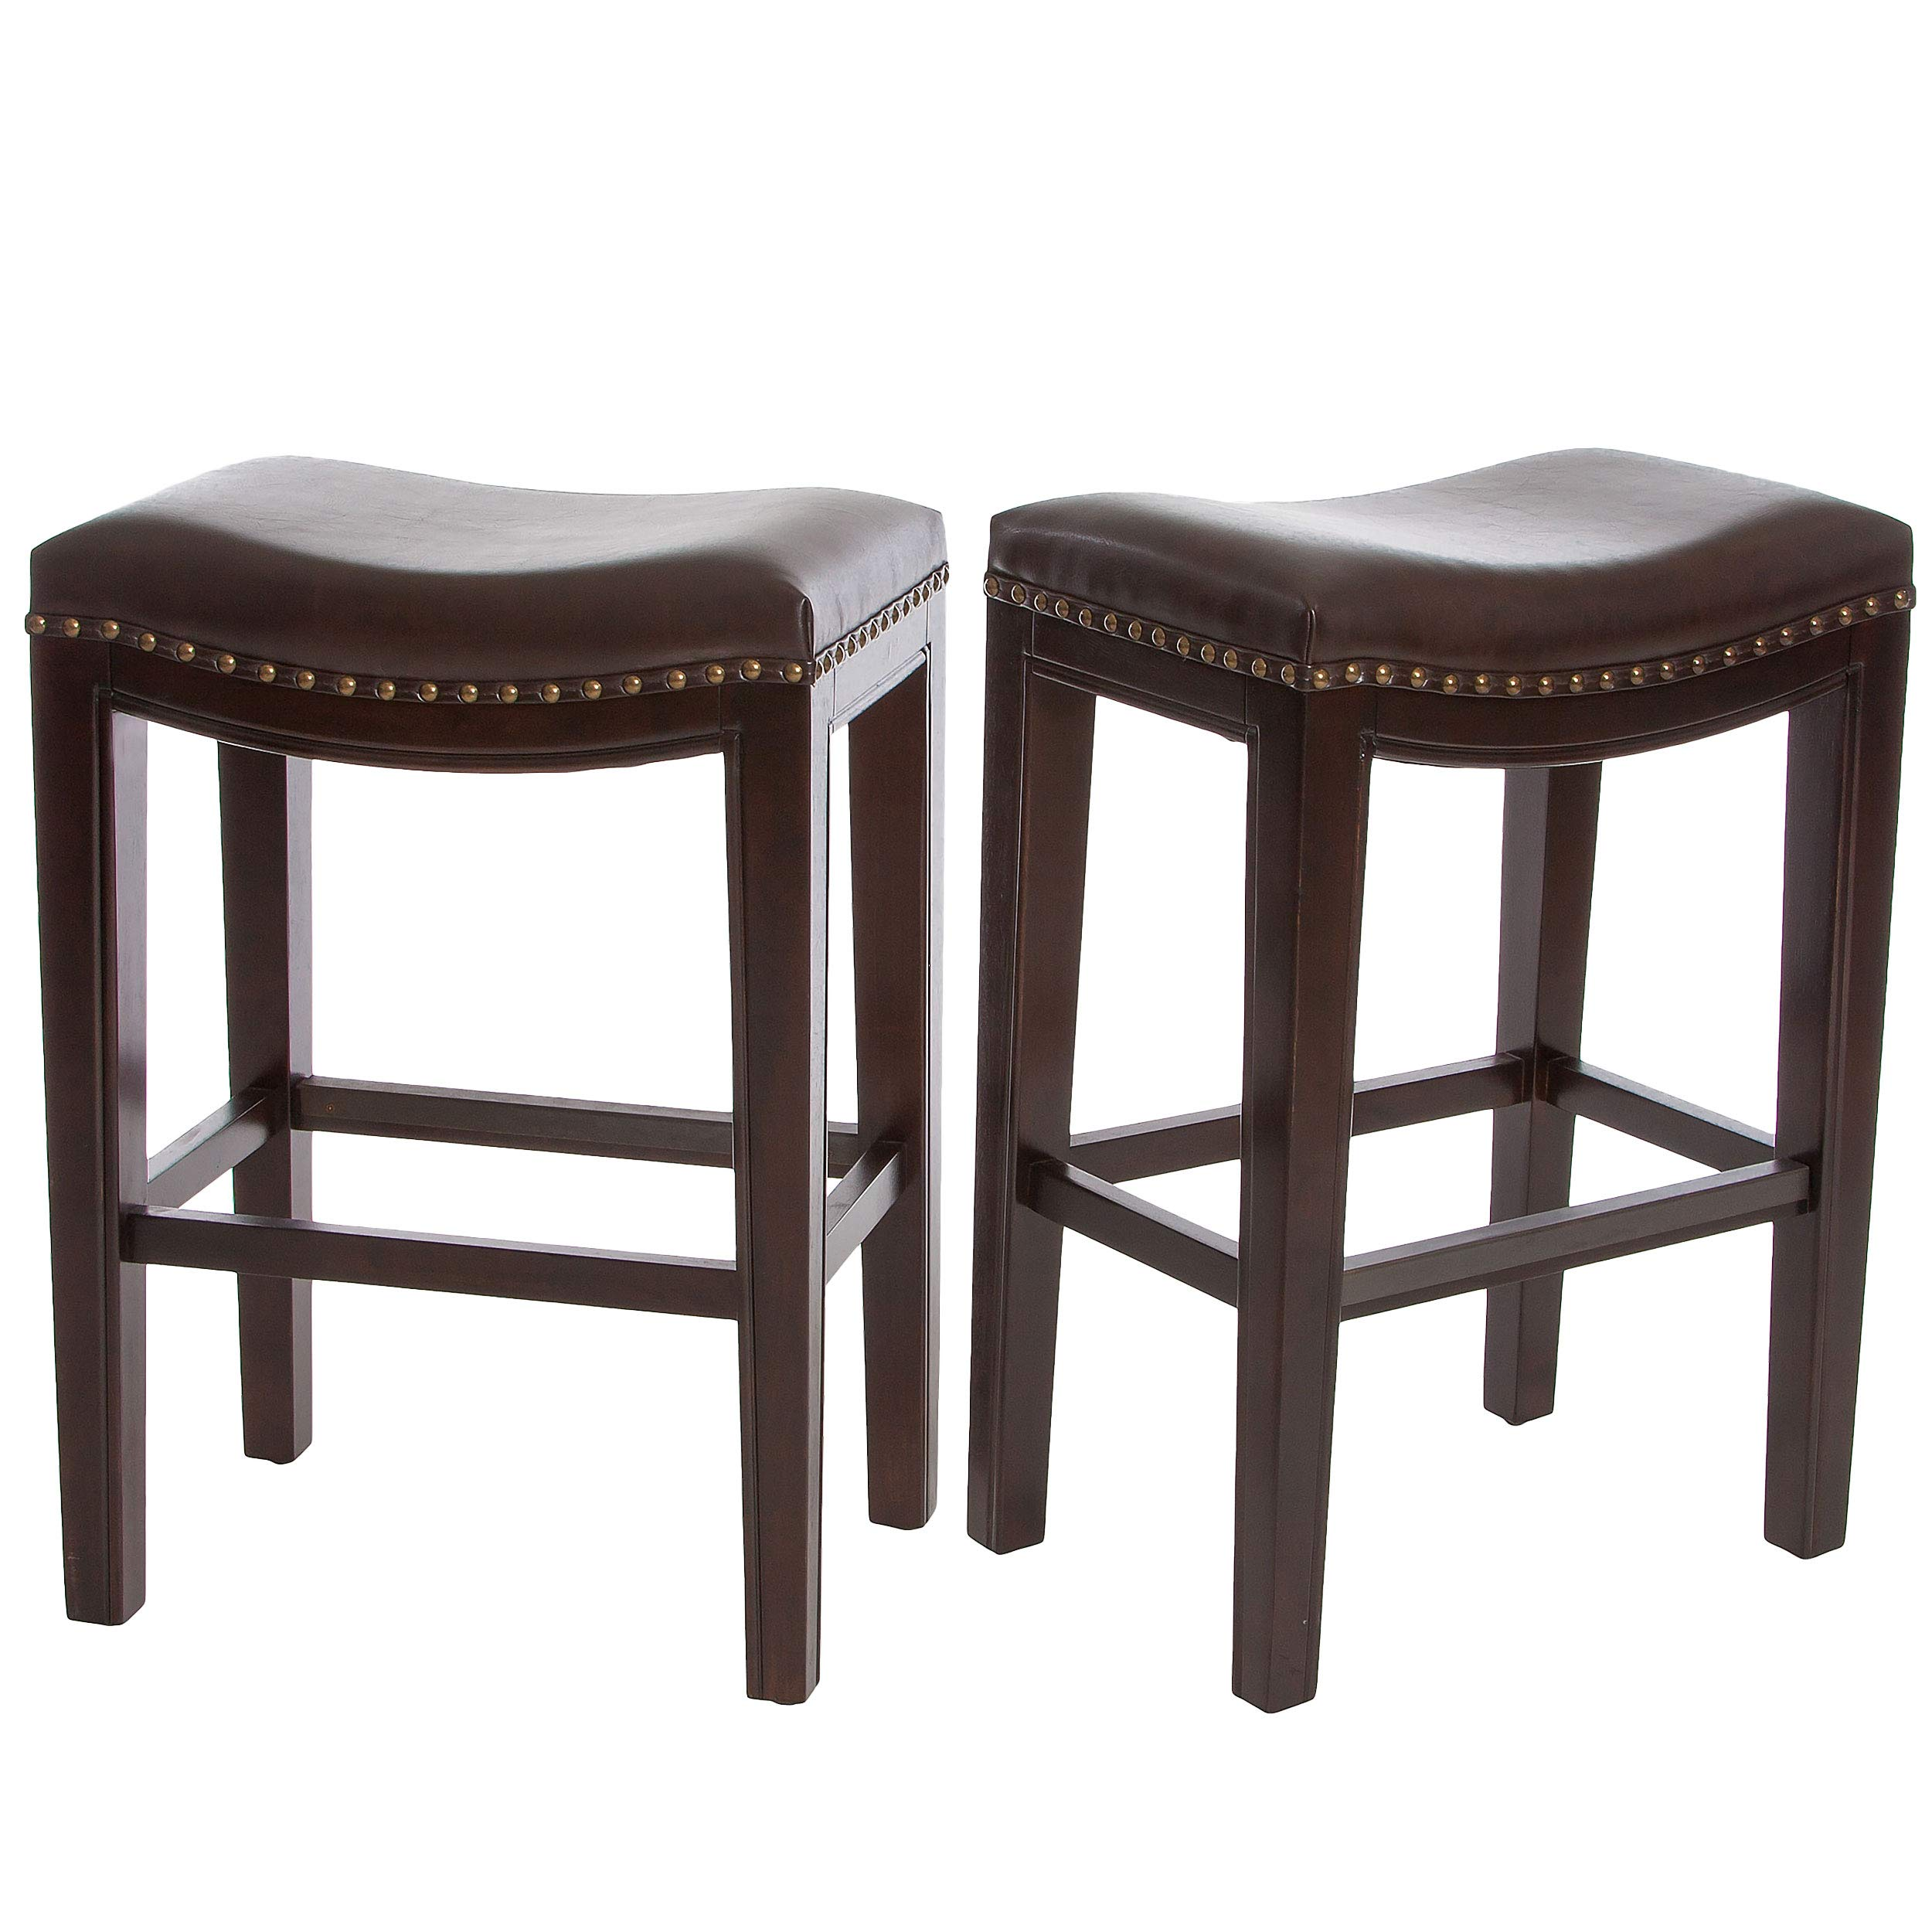 Christopher Knight Home Jaeden Backless Faux Leather Counter Stool | Set of 2 | in Brown, by Christopher Knight Home